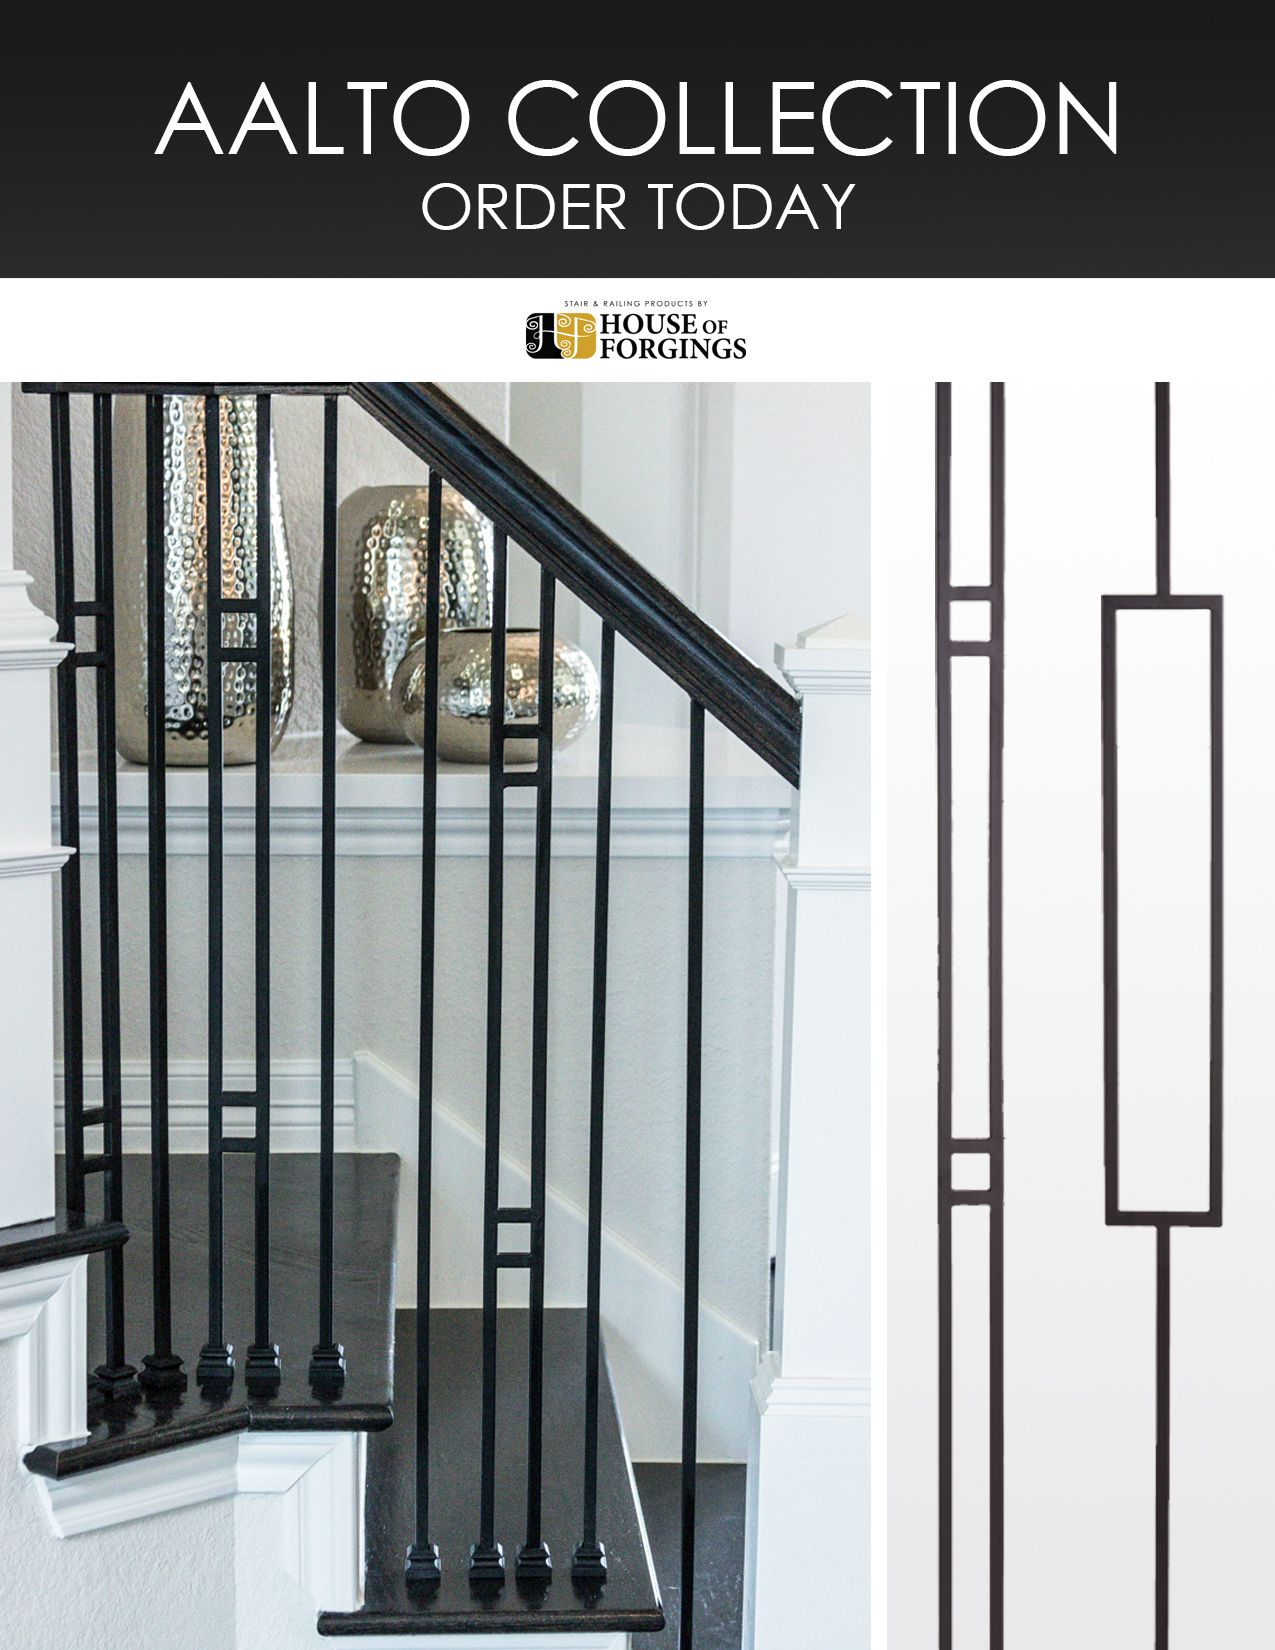 The Aalto Collection, Affordable Modern Stair Products Our Commitment To